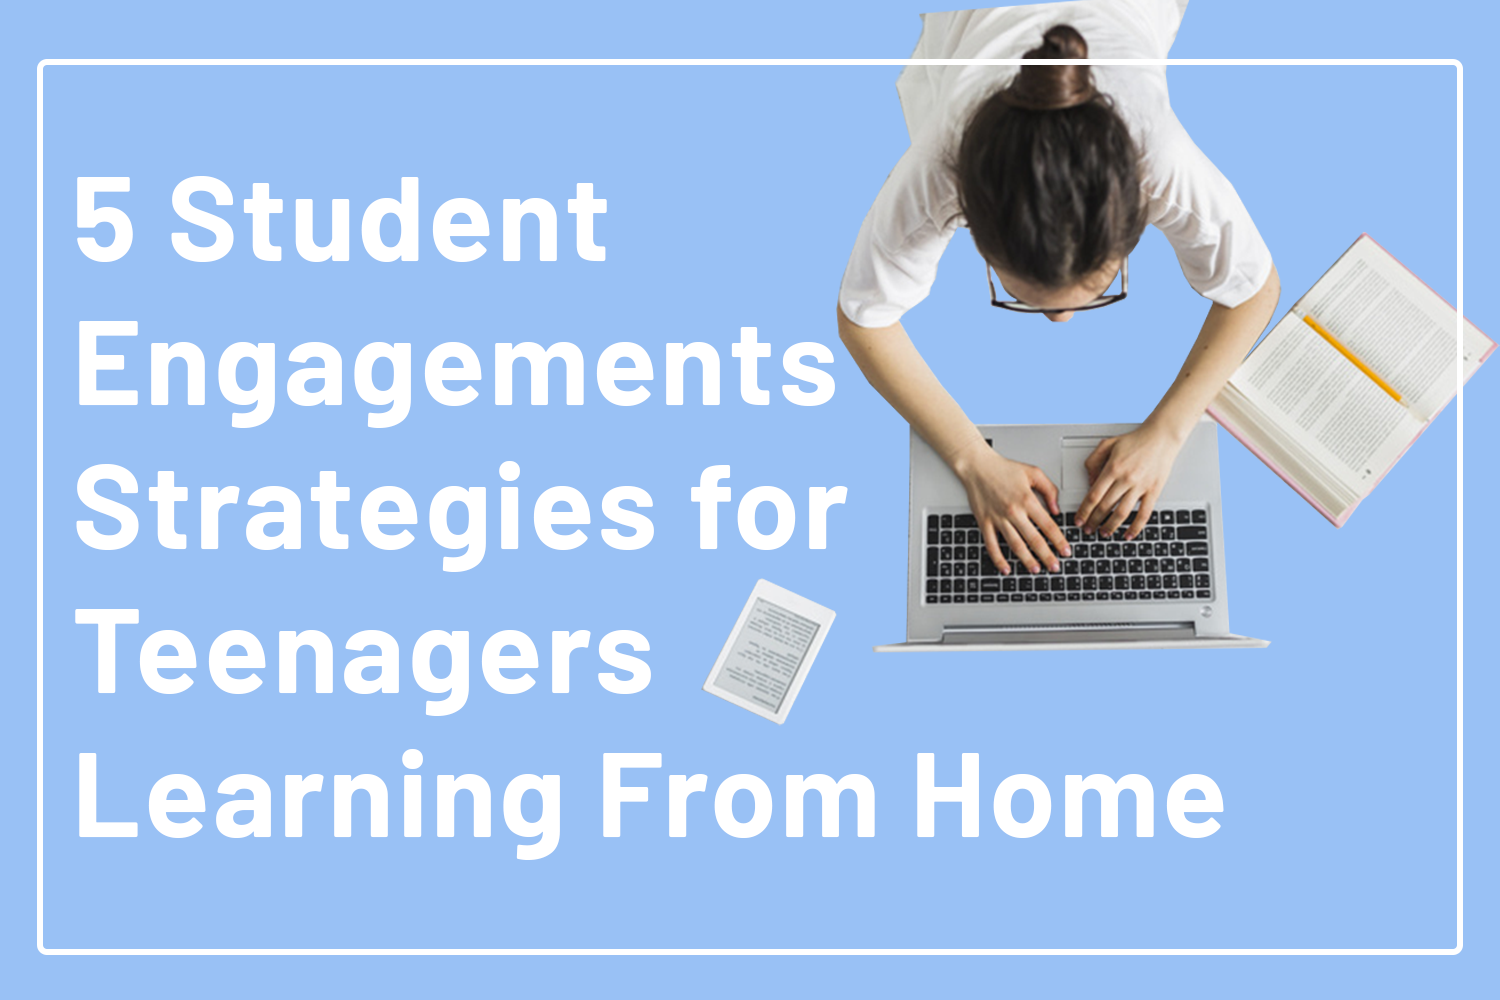 You are currently viewing 5 Student Engagements Strategies for Teenagers Learning From Home